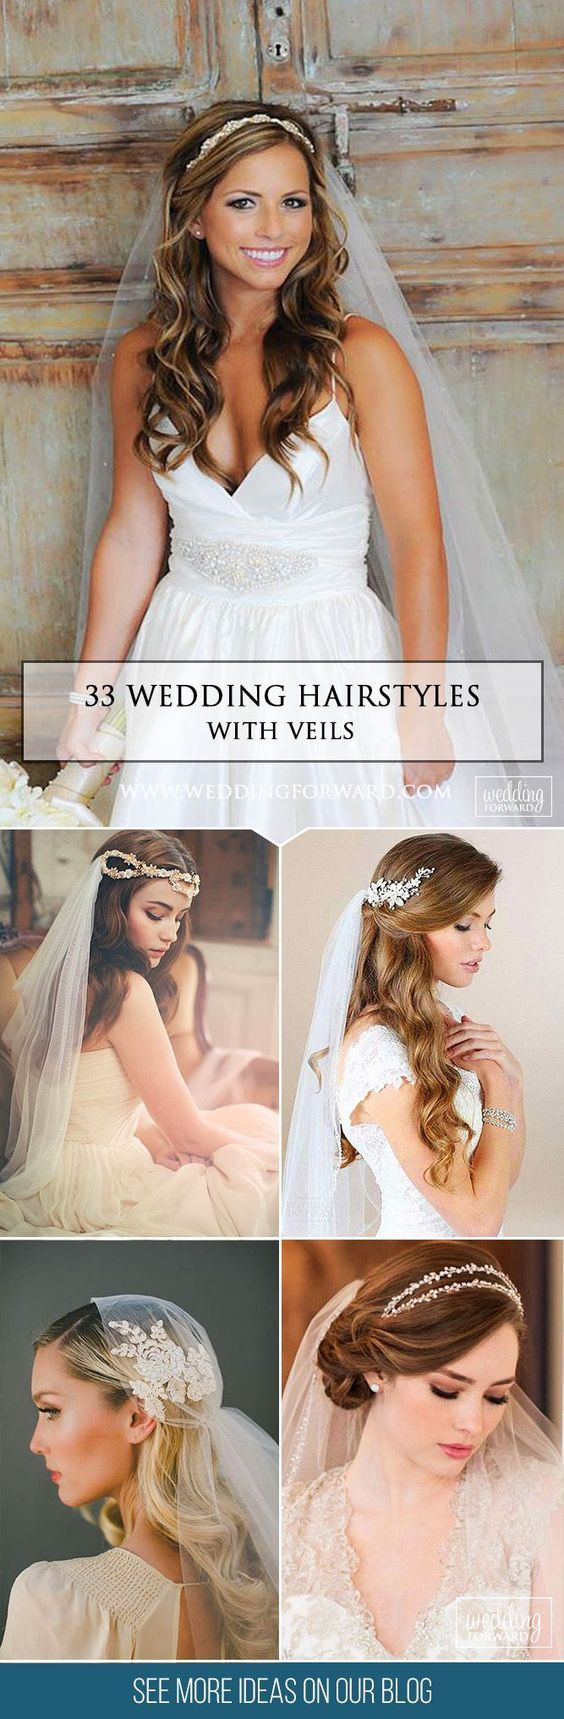 wedding hairstyles with veil we picked up wedding hairstyles with